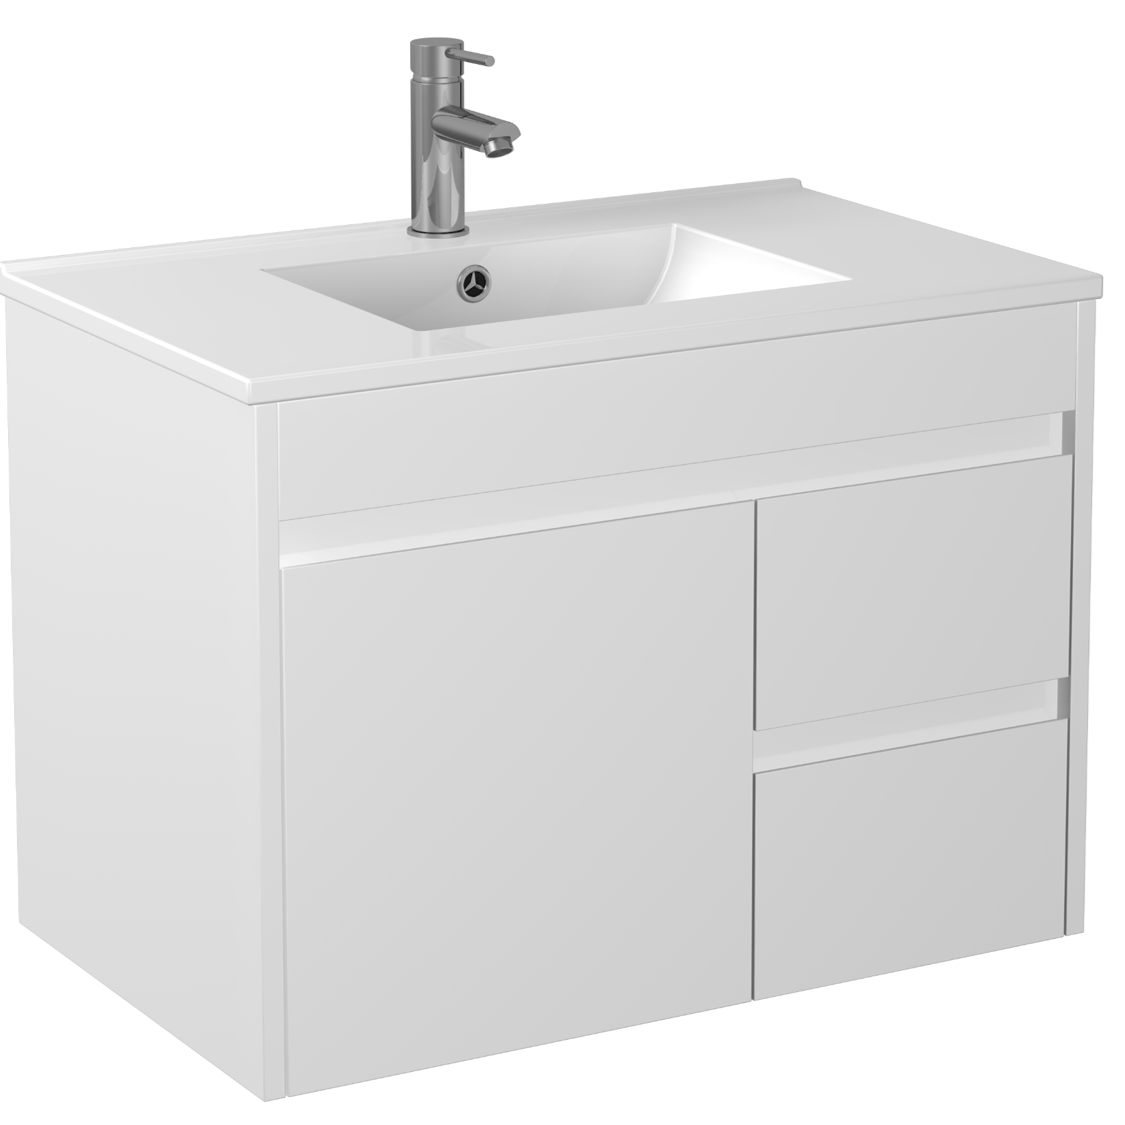 750mm PVC Waterproof Wall Hung Vanity